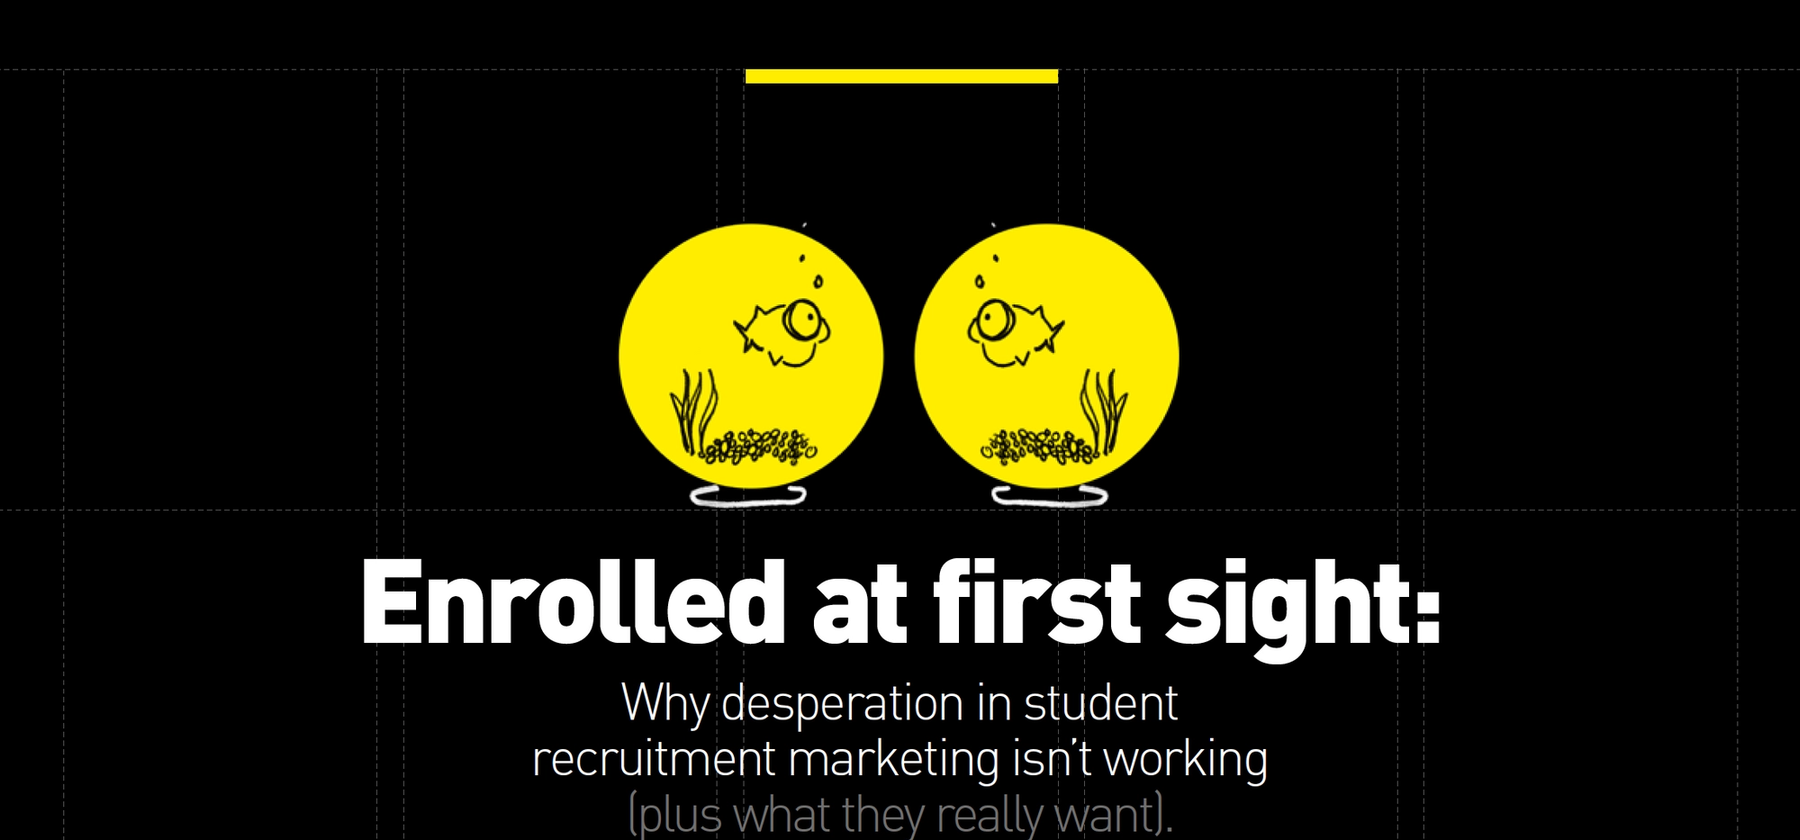 Why desperation in student recruitment marketing isn't working